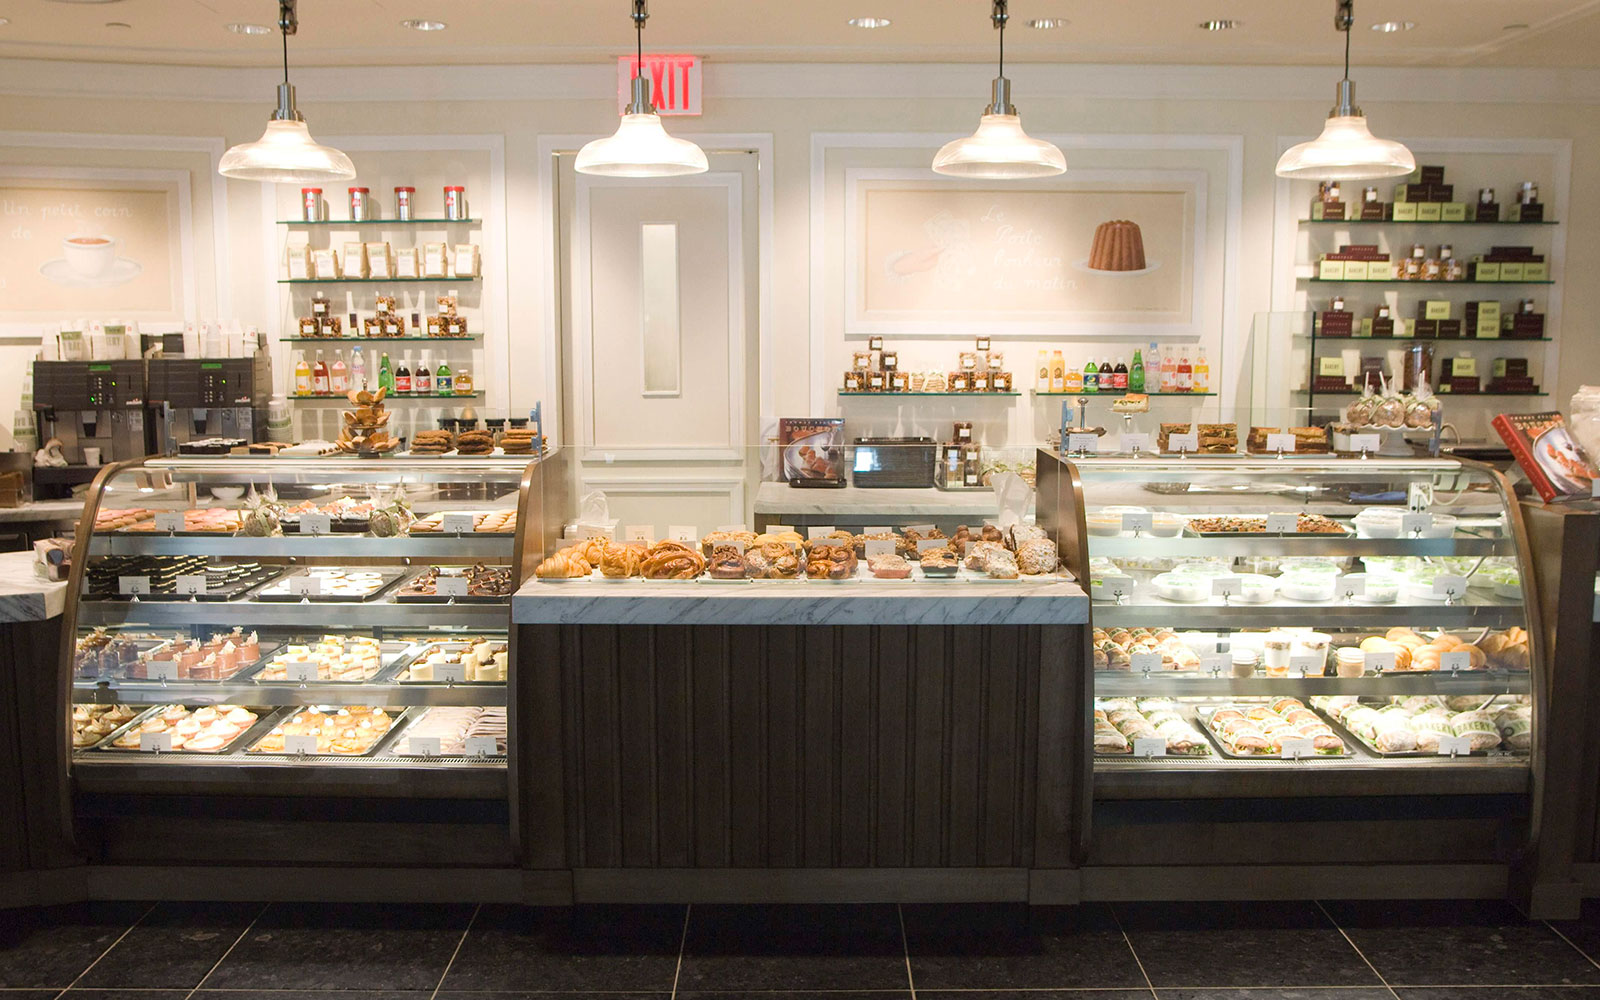 The 15 Best Small-Town Bakeries: Bouchon Bakery in Yountville, California